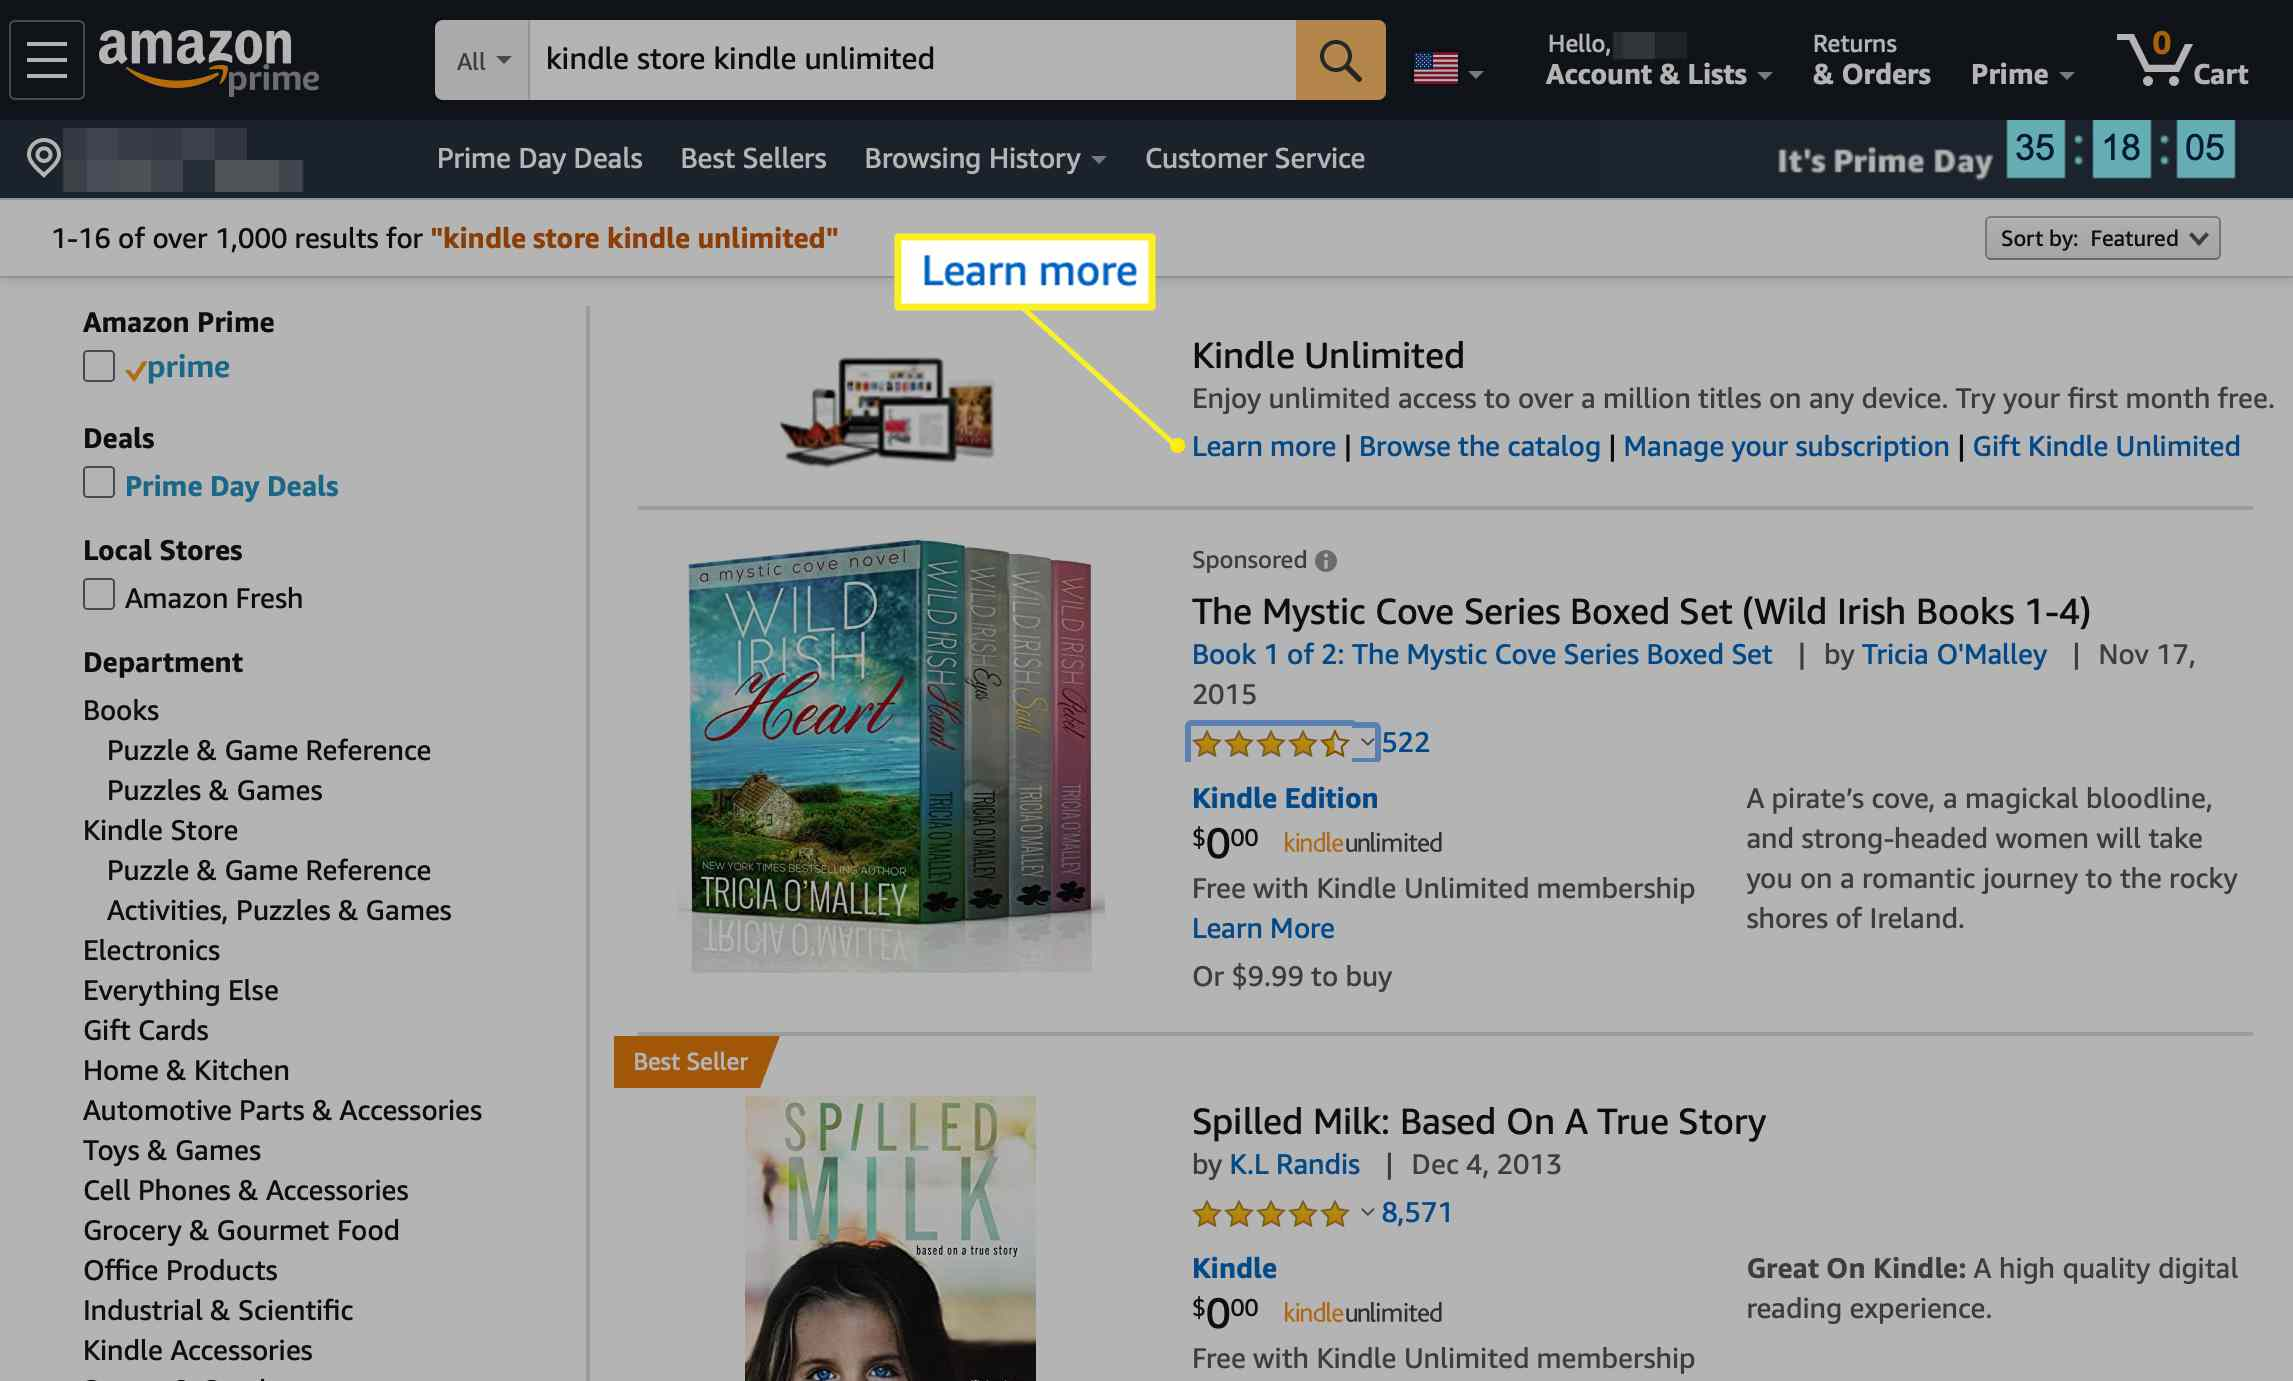 Amazon.com with Learn more selected in the Kindle Unlimited section